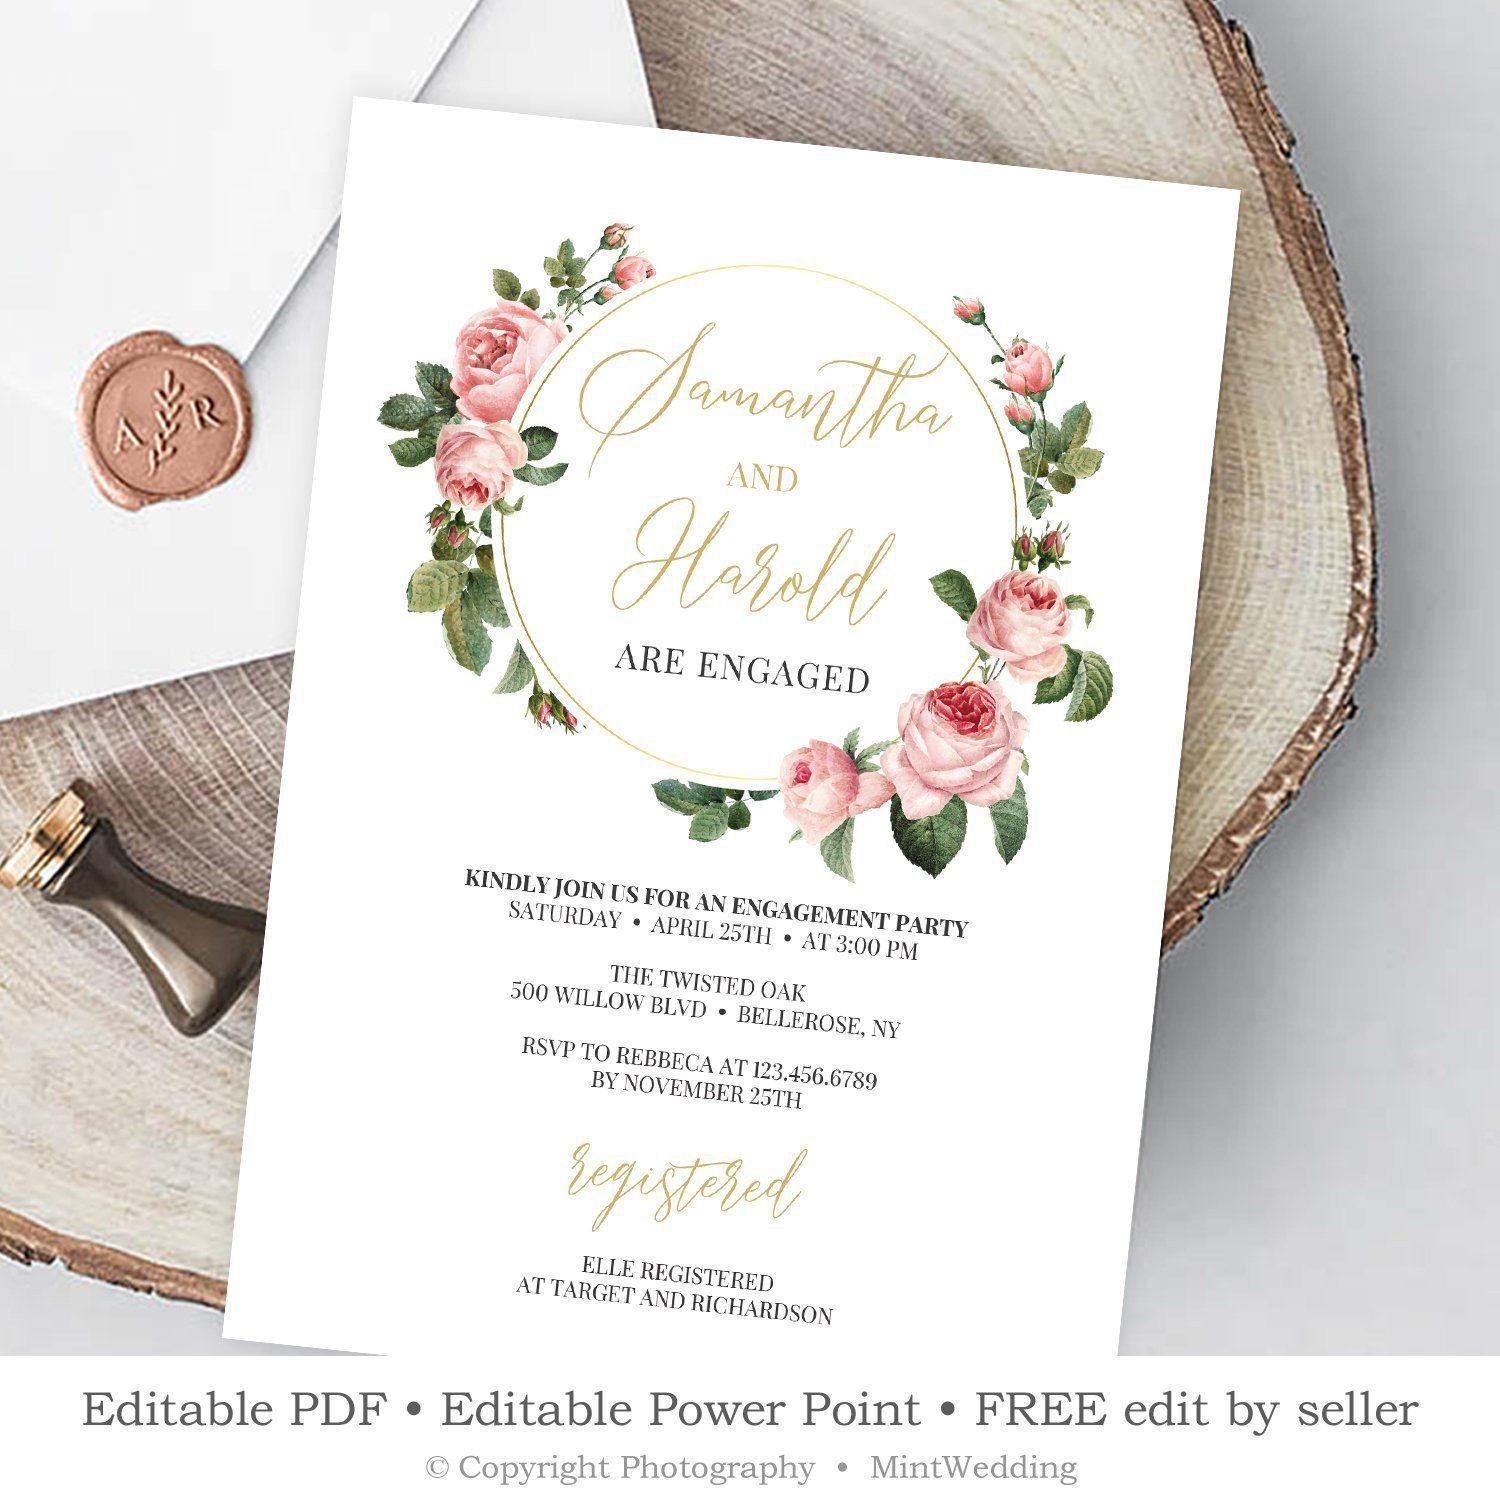 009 Archaicawful Free Engagement Invitation Template Online With Photo Concept Full